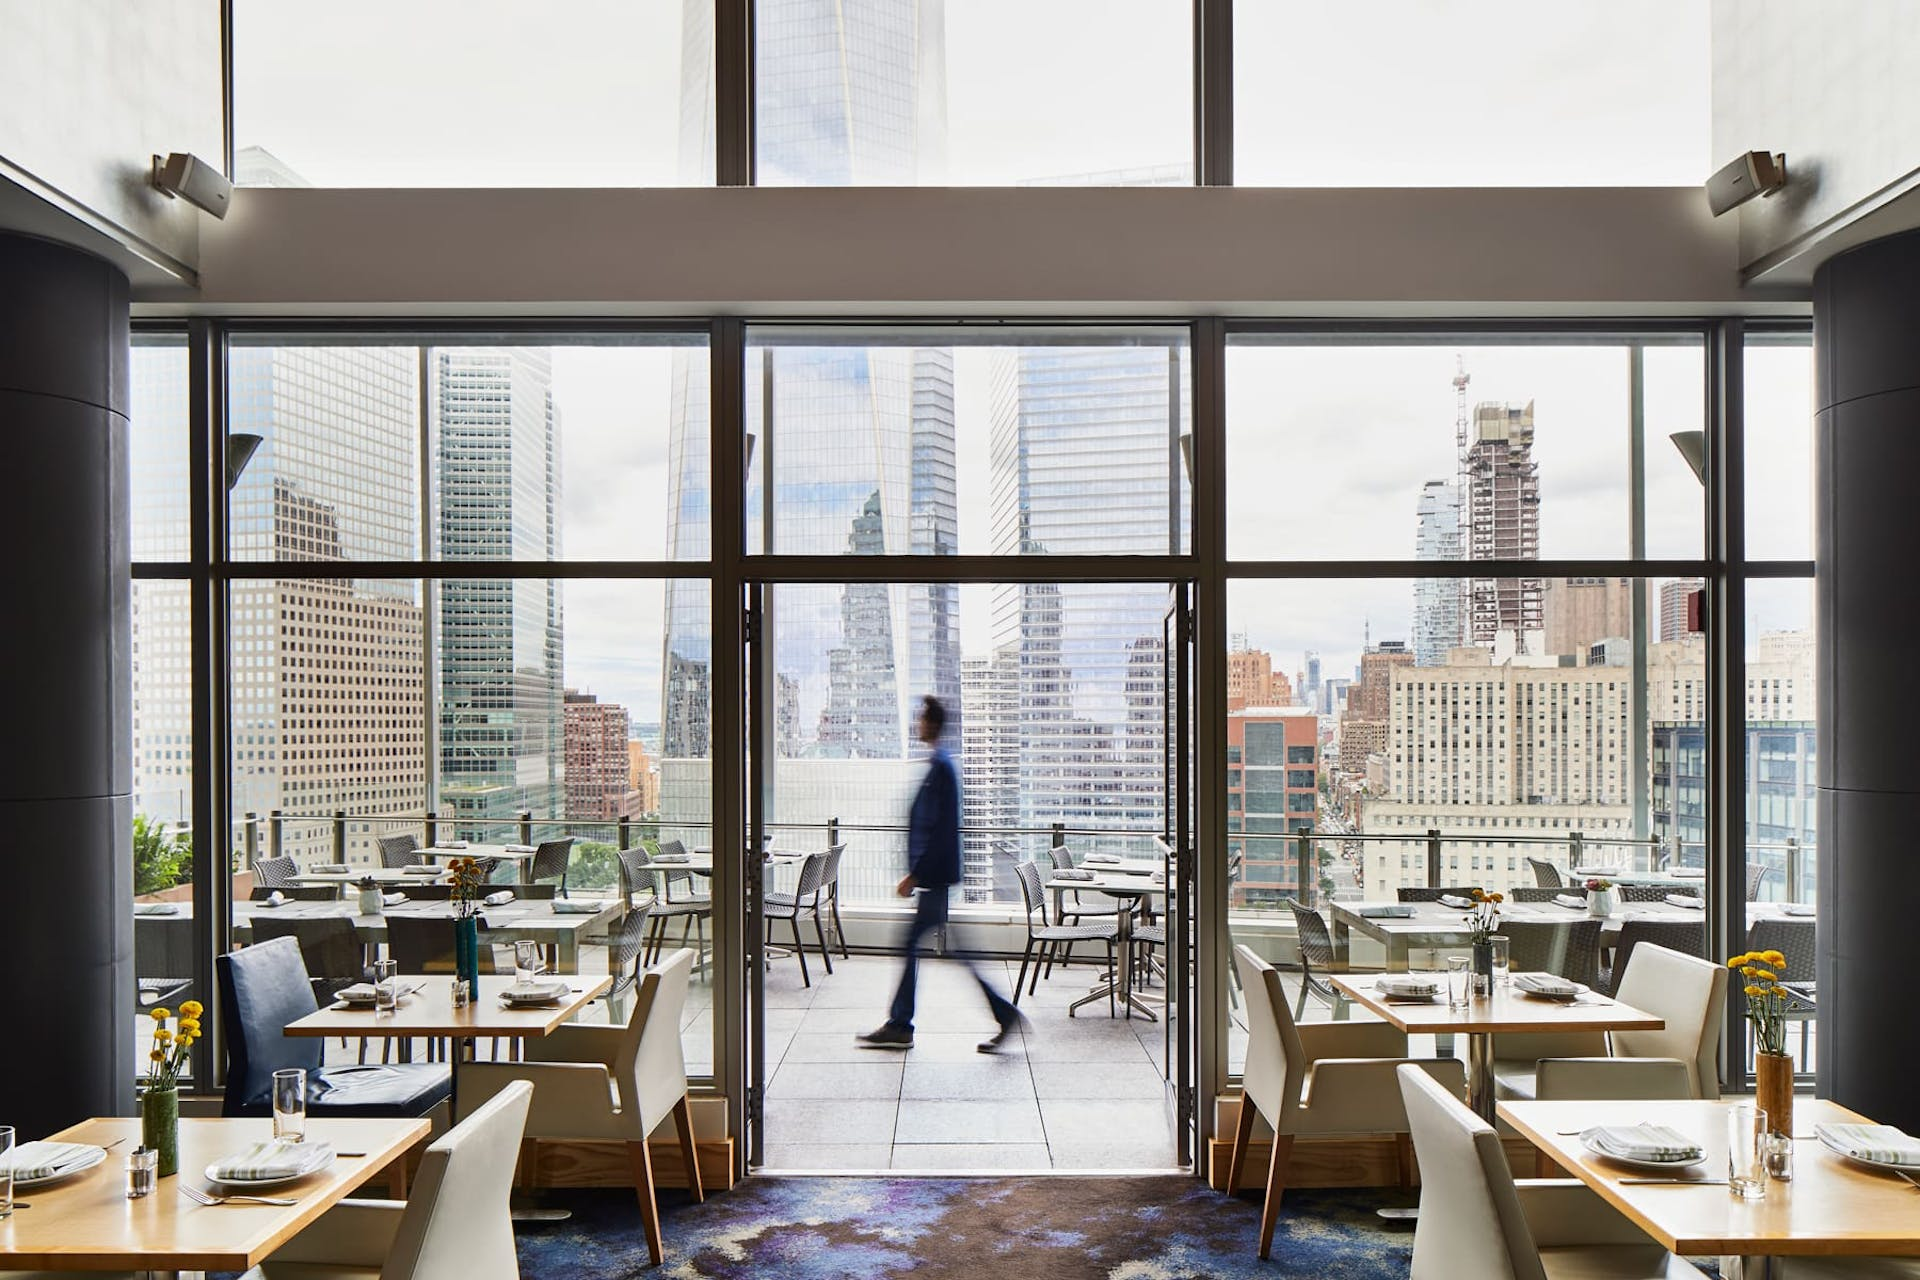 View of WTC from restaurant, NYC